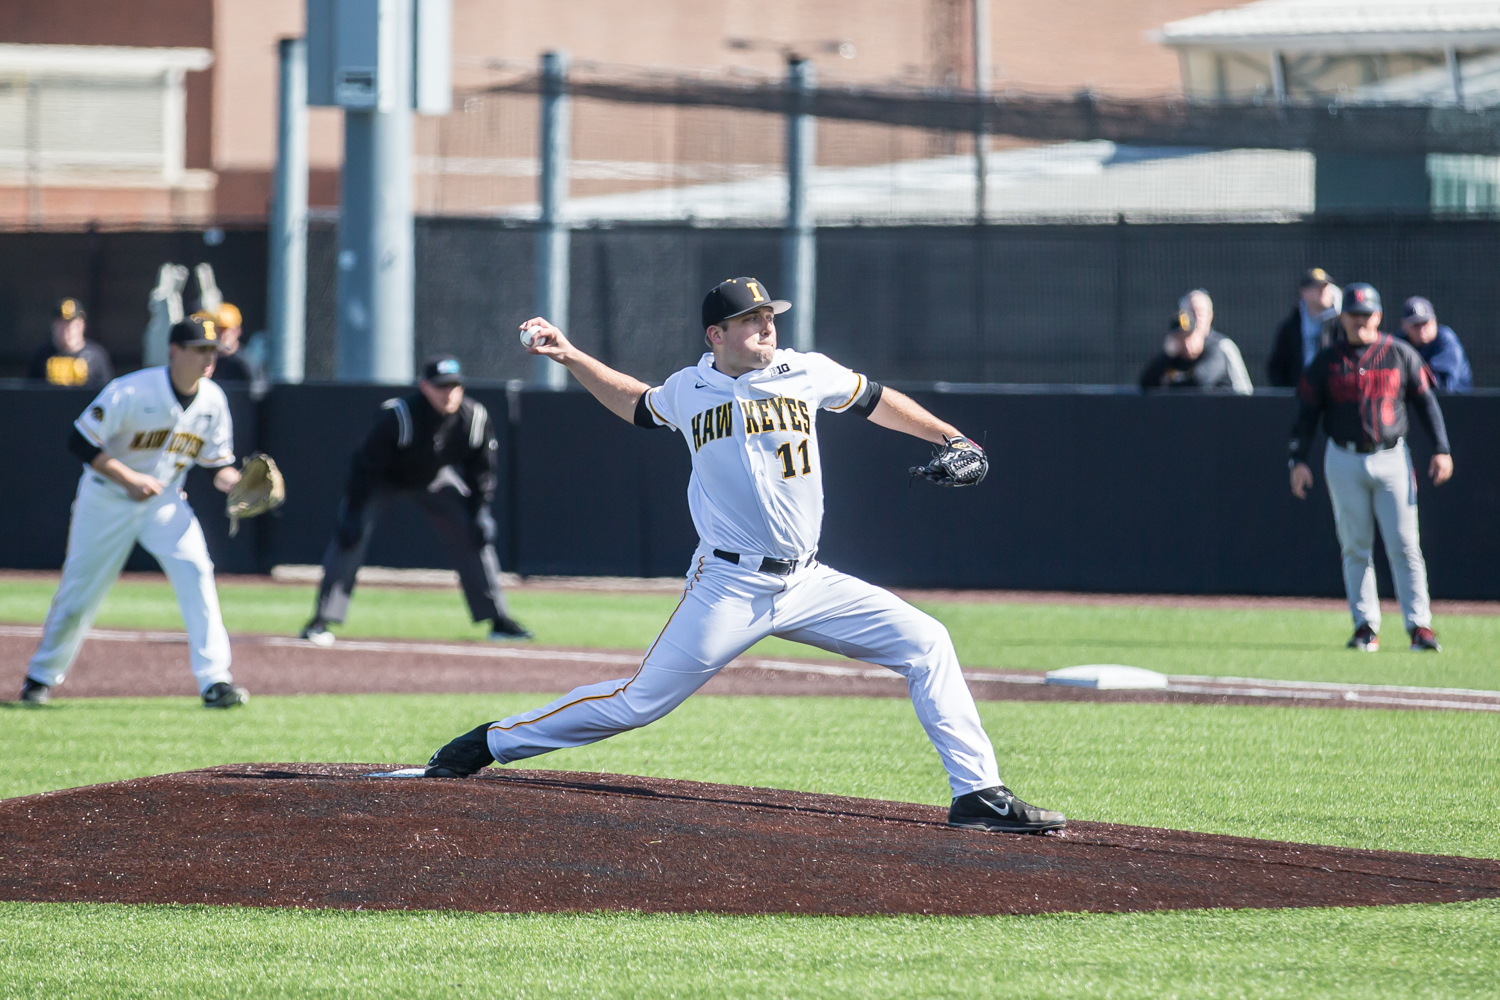 Iowa pitcher Cole McDonald throw a pitch during a baseball game between Iowa and Cal-State Northridge at Duane Banks Field on Saturday, March 16, 2019. The Hawkeyes dropped their home opener to the Matadors, 8-5.